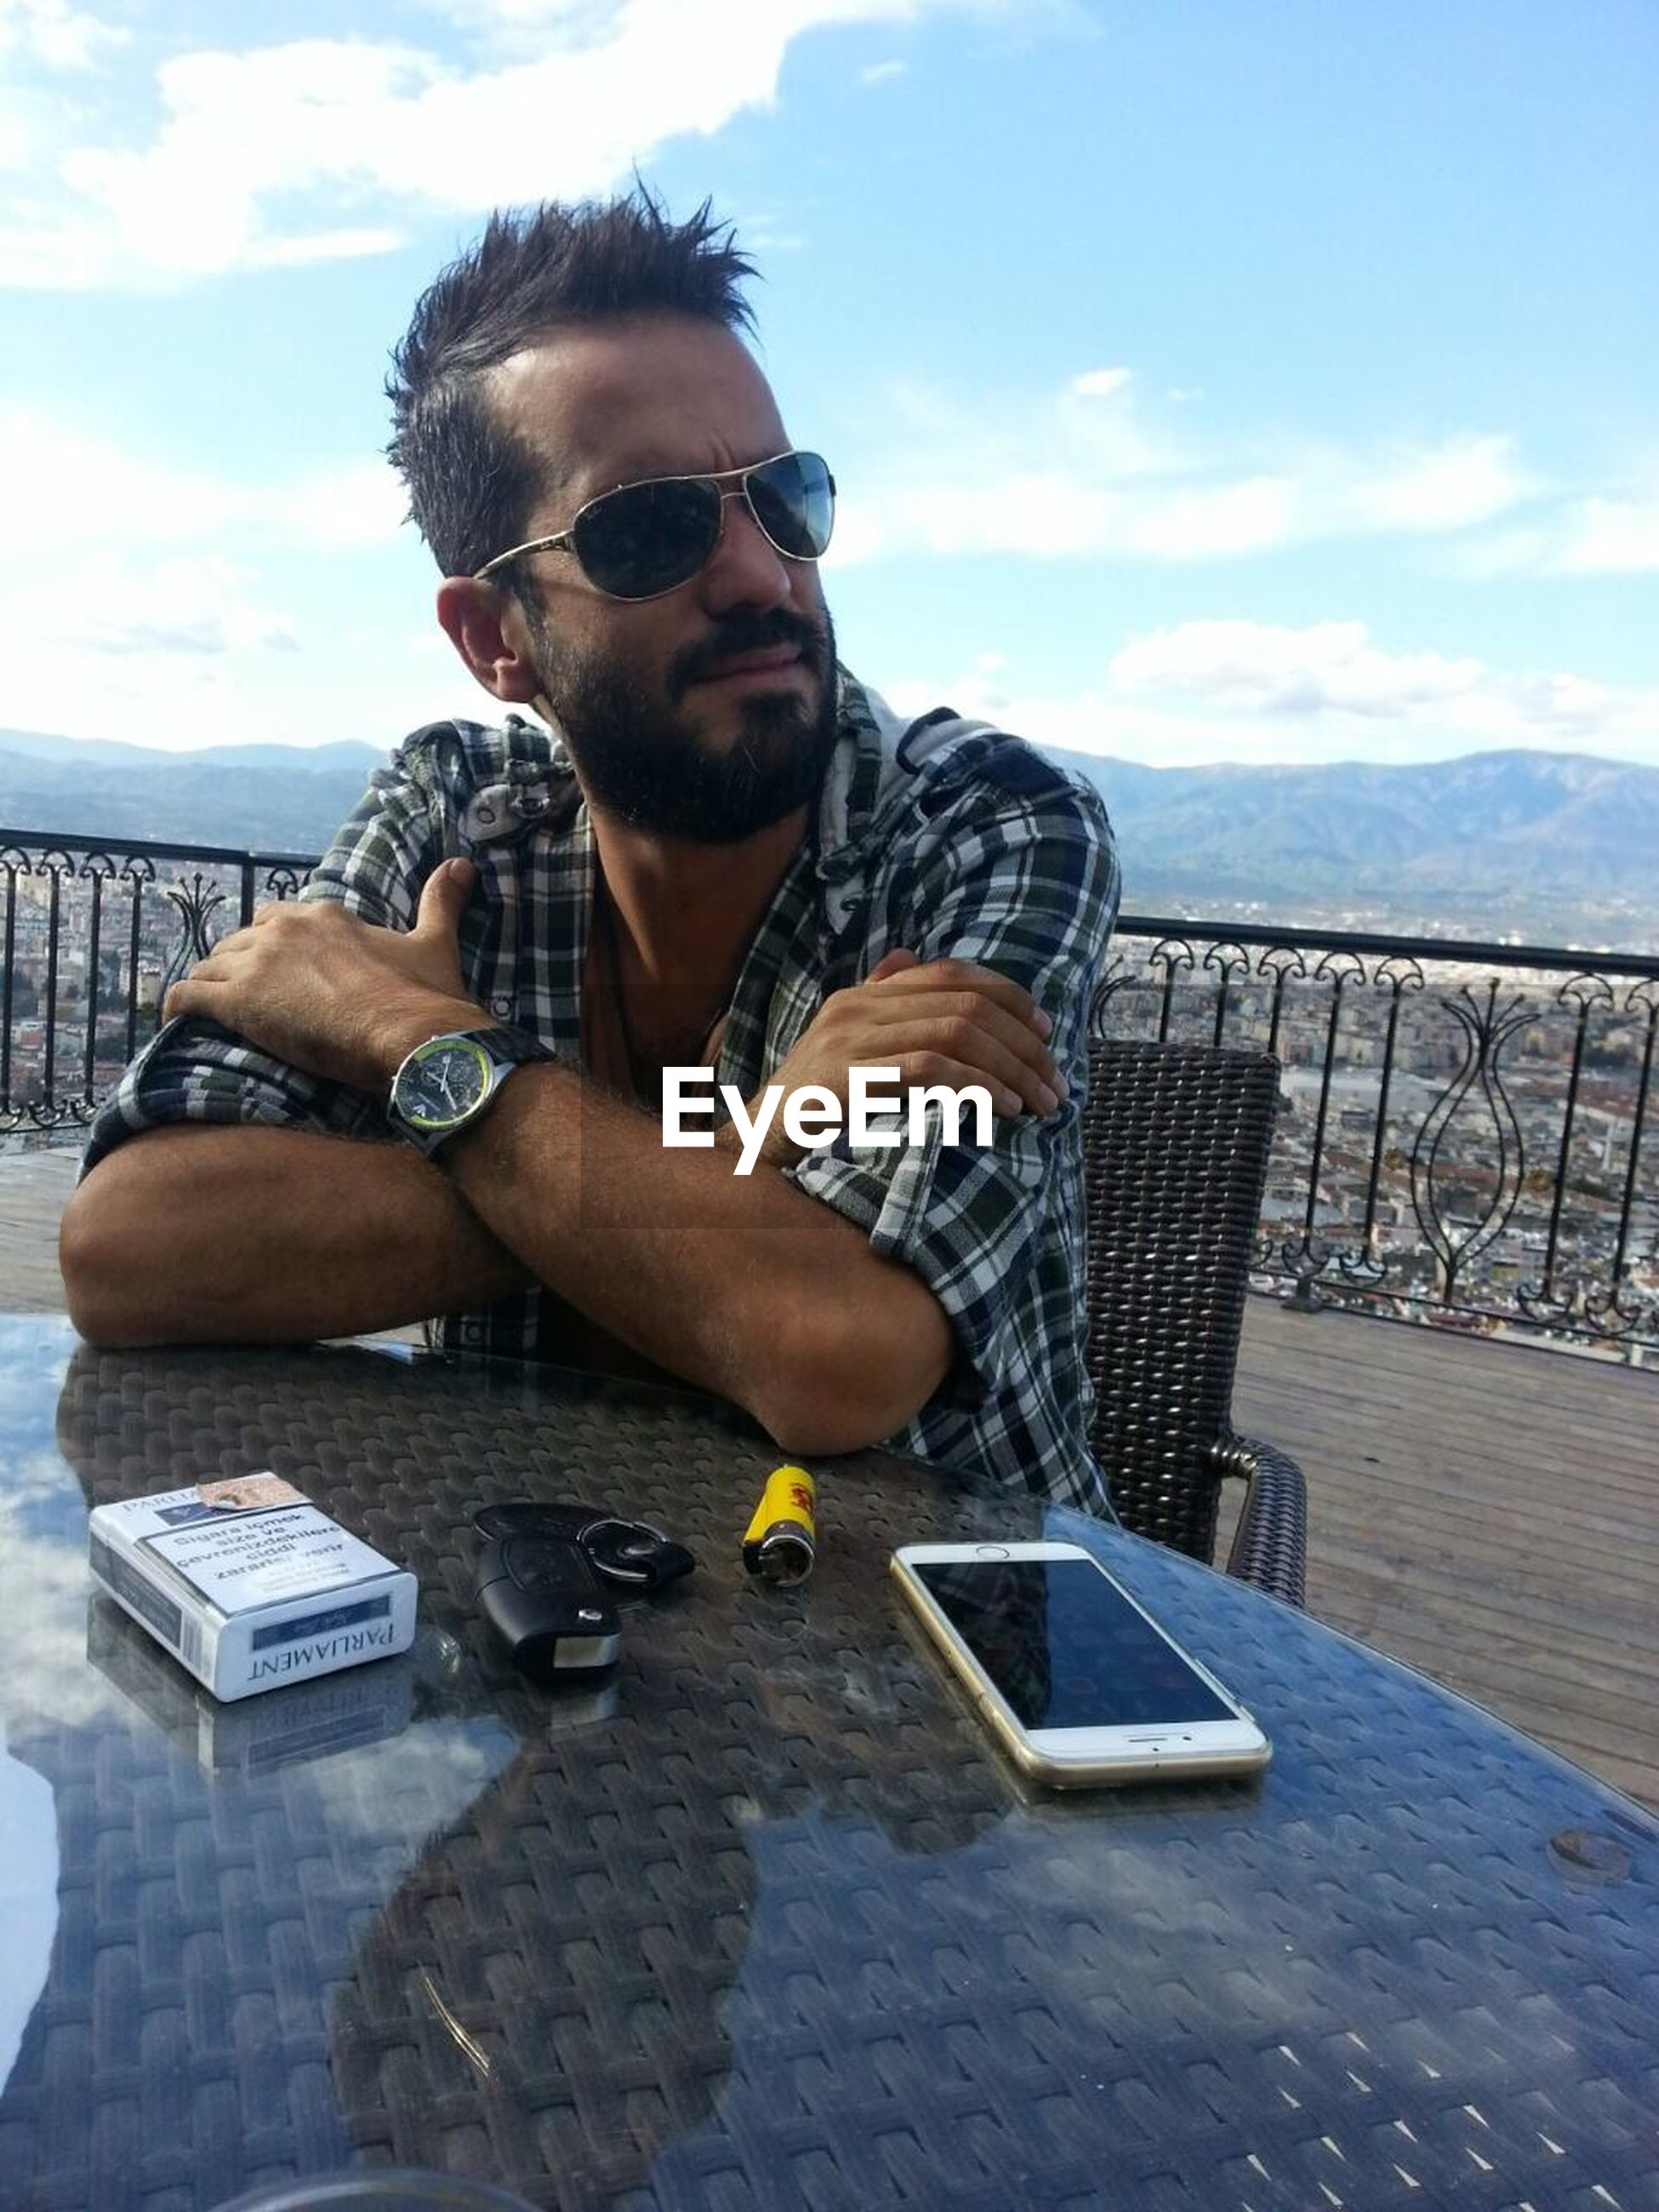 lifestyles, young men, sunglasses, leisure activity, young adult, sky, person, looking at camera, casual clothing, portrait, photography themes, holding, front view, sitting, mid adult, mid adult men, technology, photographing